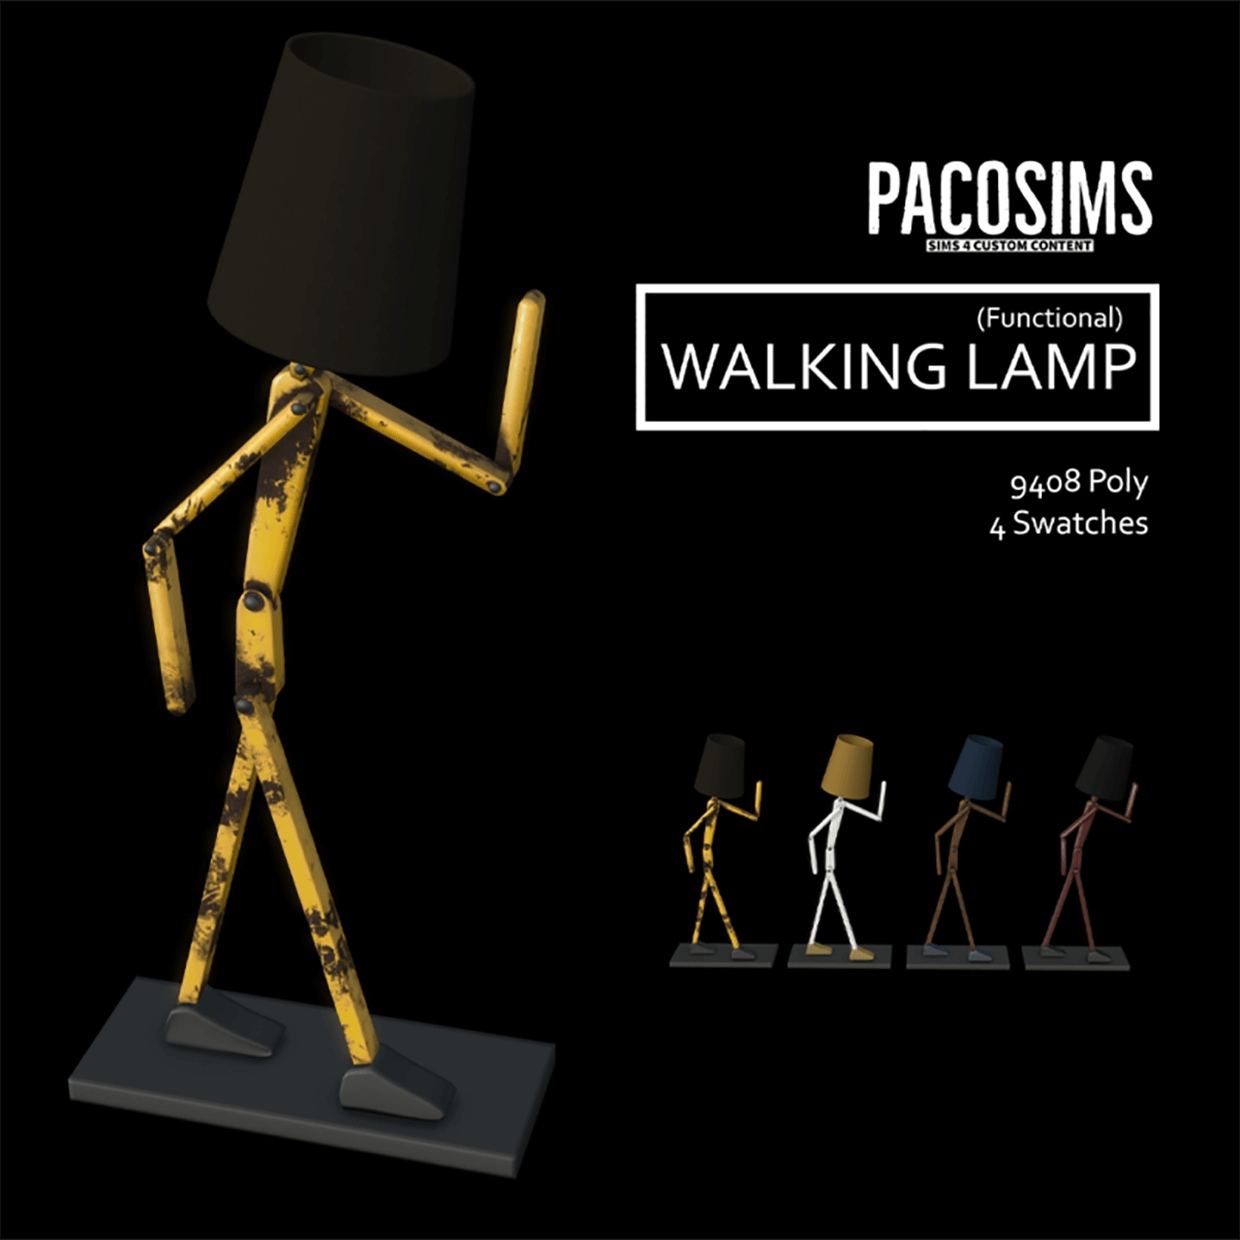 Walking lamp by PacoSims